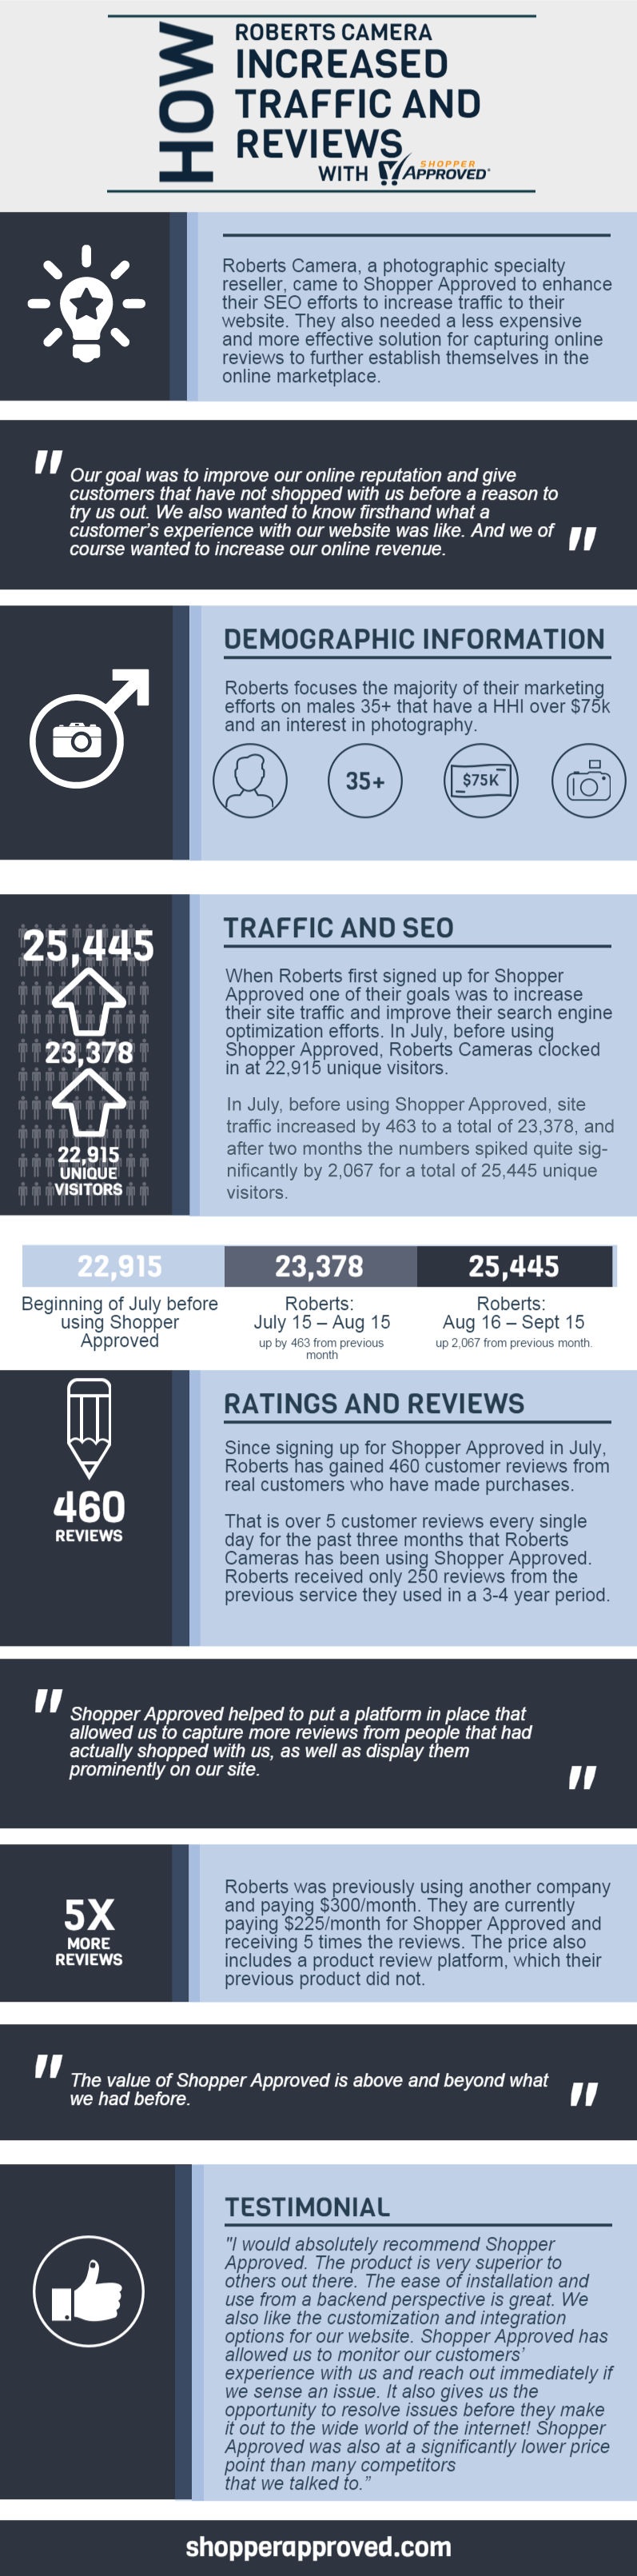 Case Study: How One Retailer Increased Reviews and Traffic with Shopper Approved (Infographic)